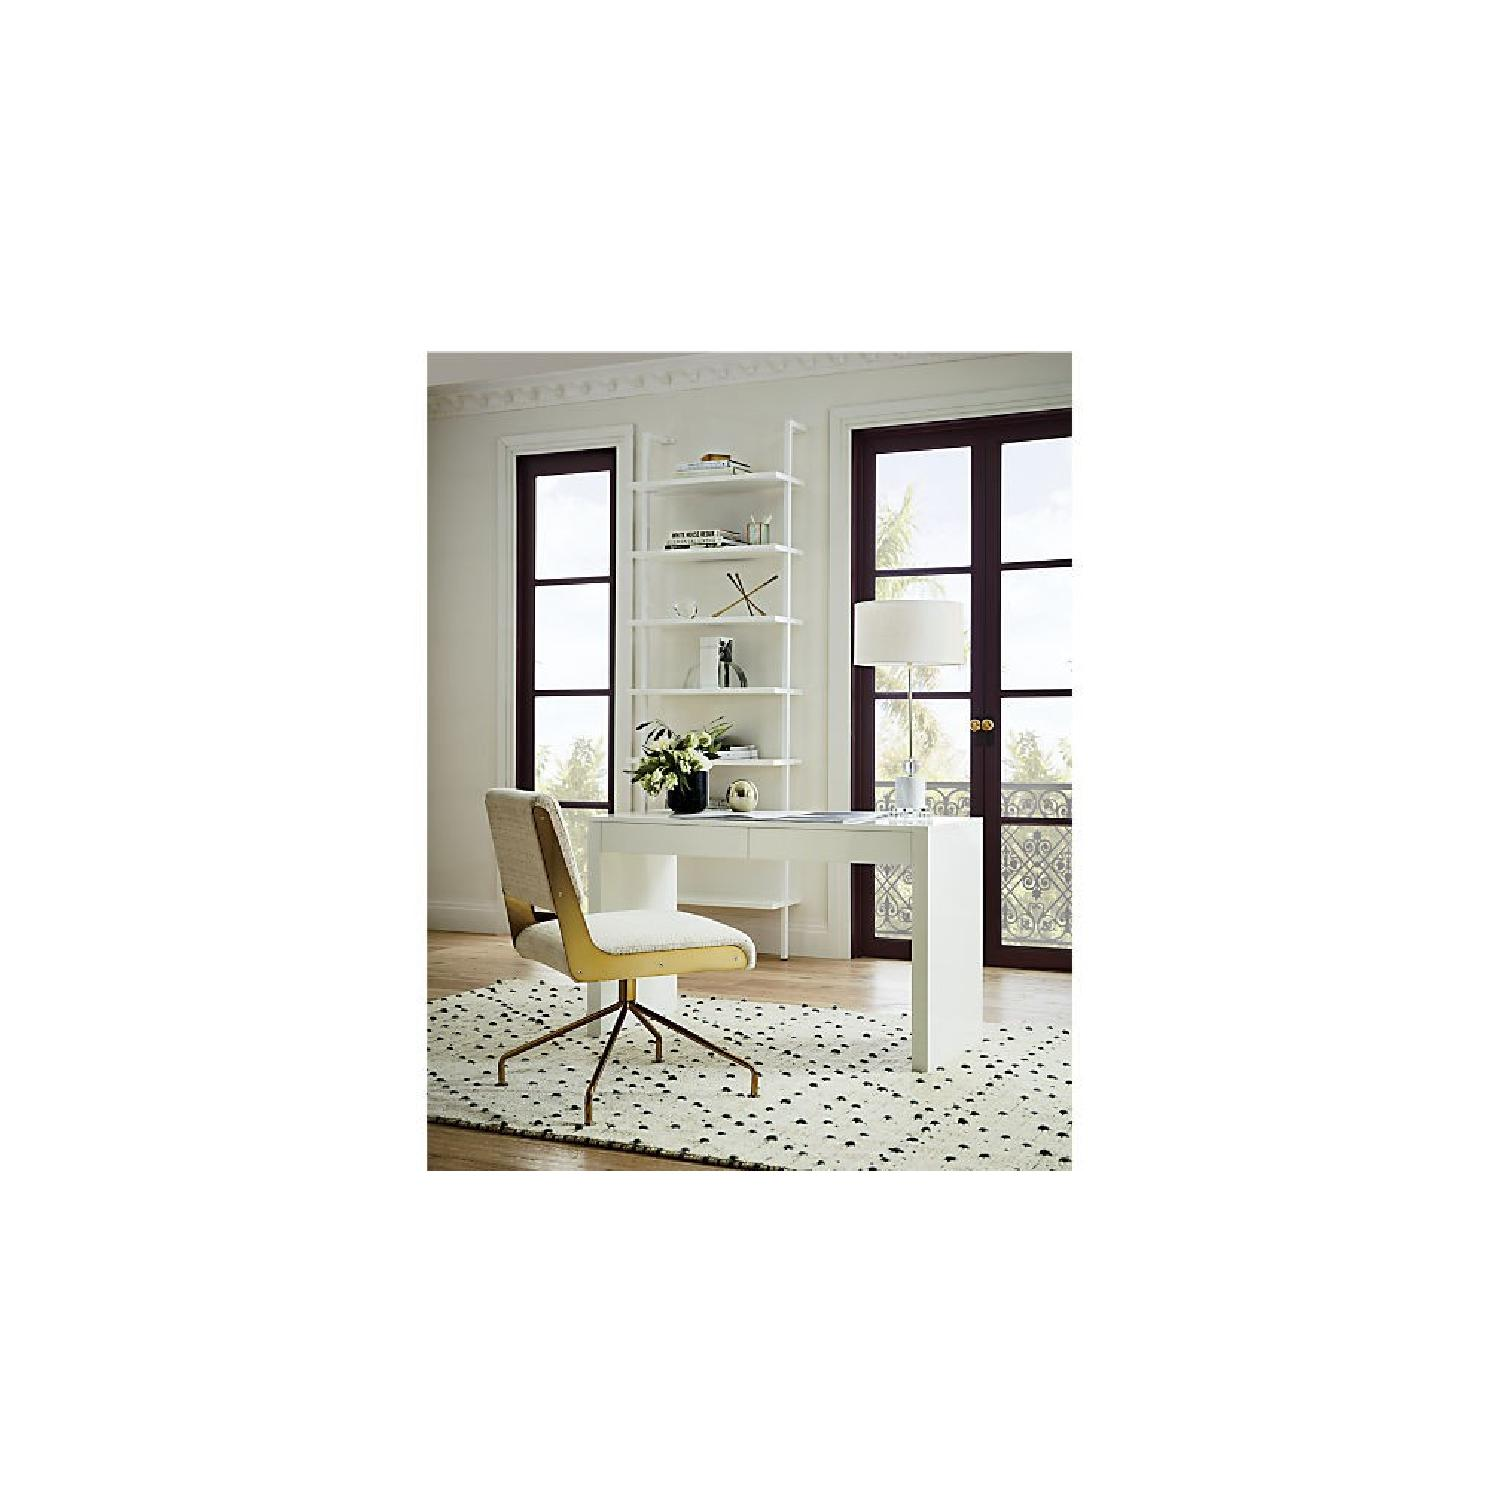 West Elm Parsons Desk White with Drawers-1